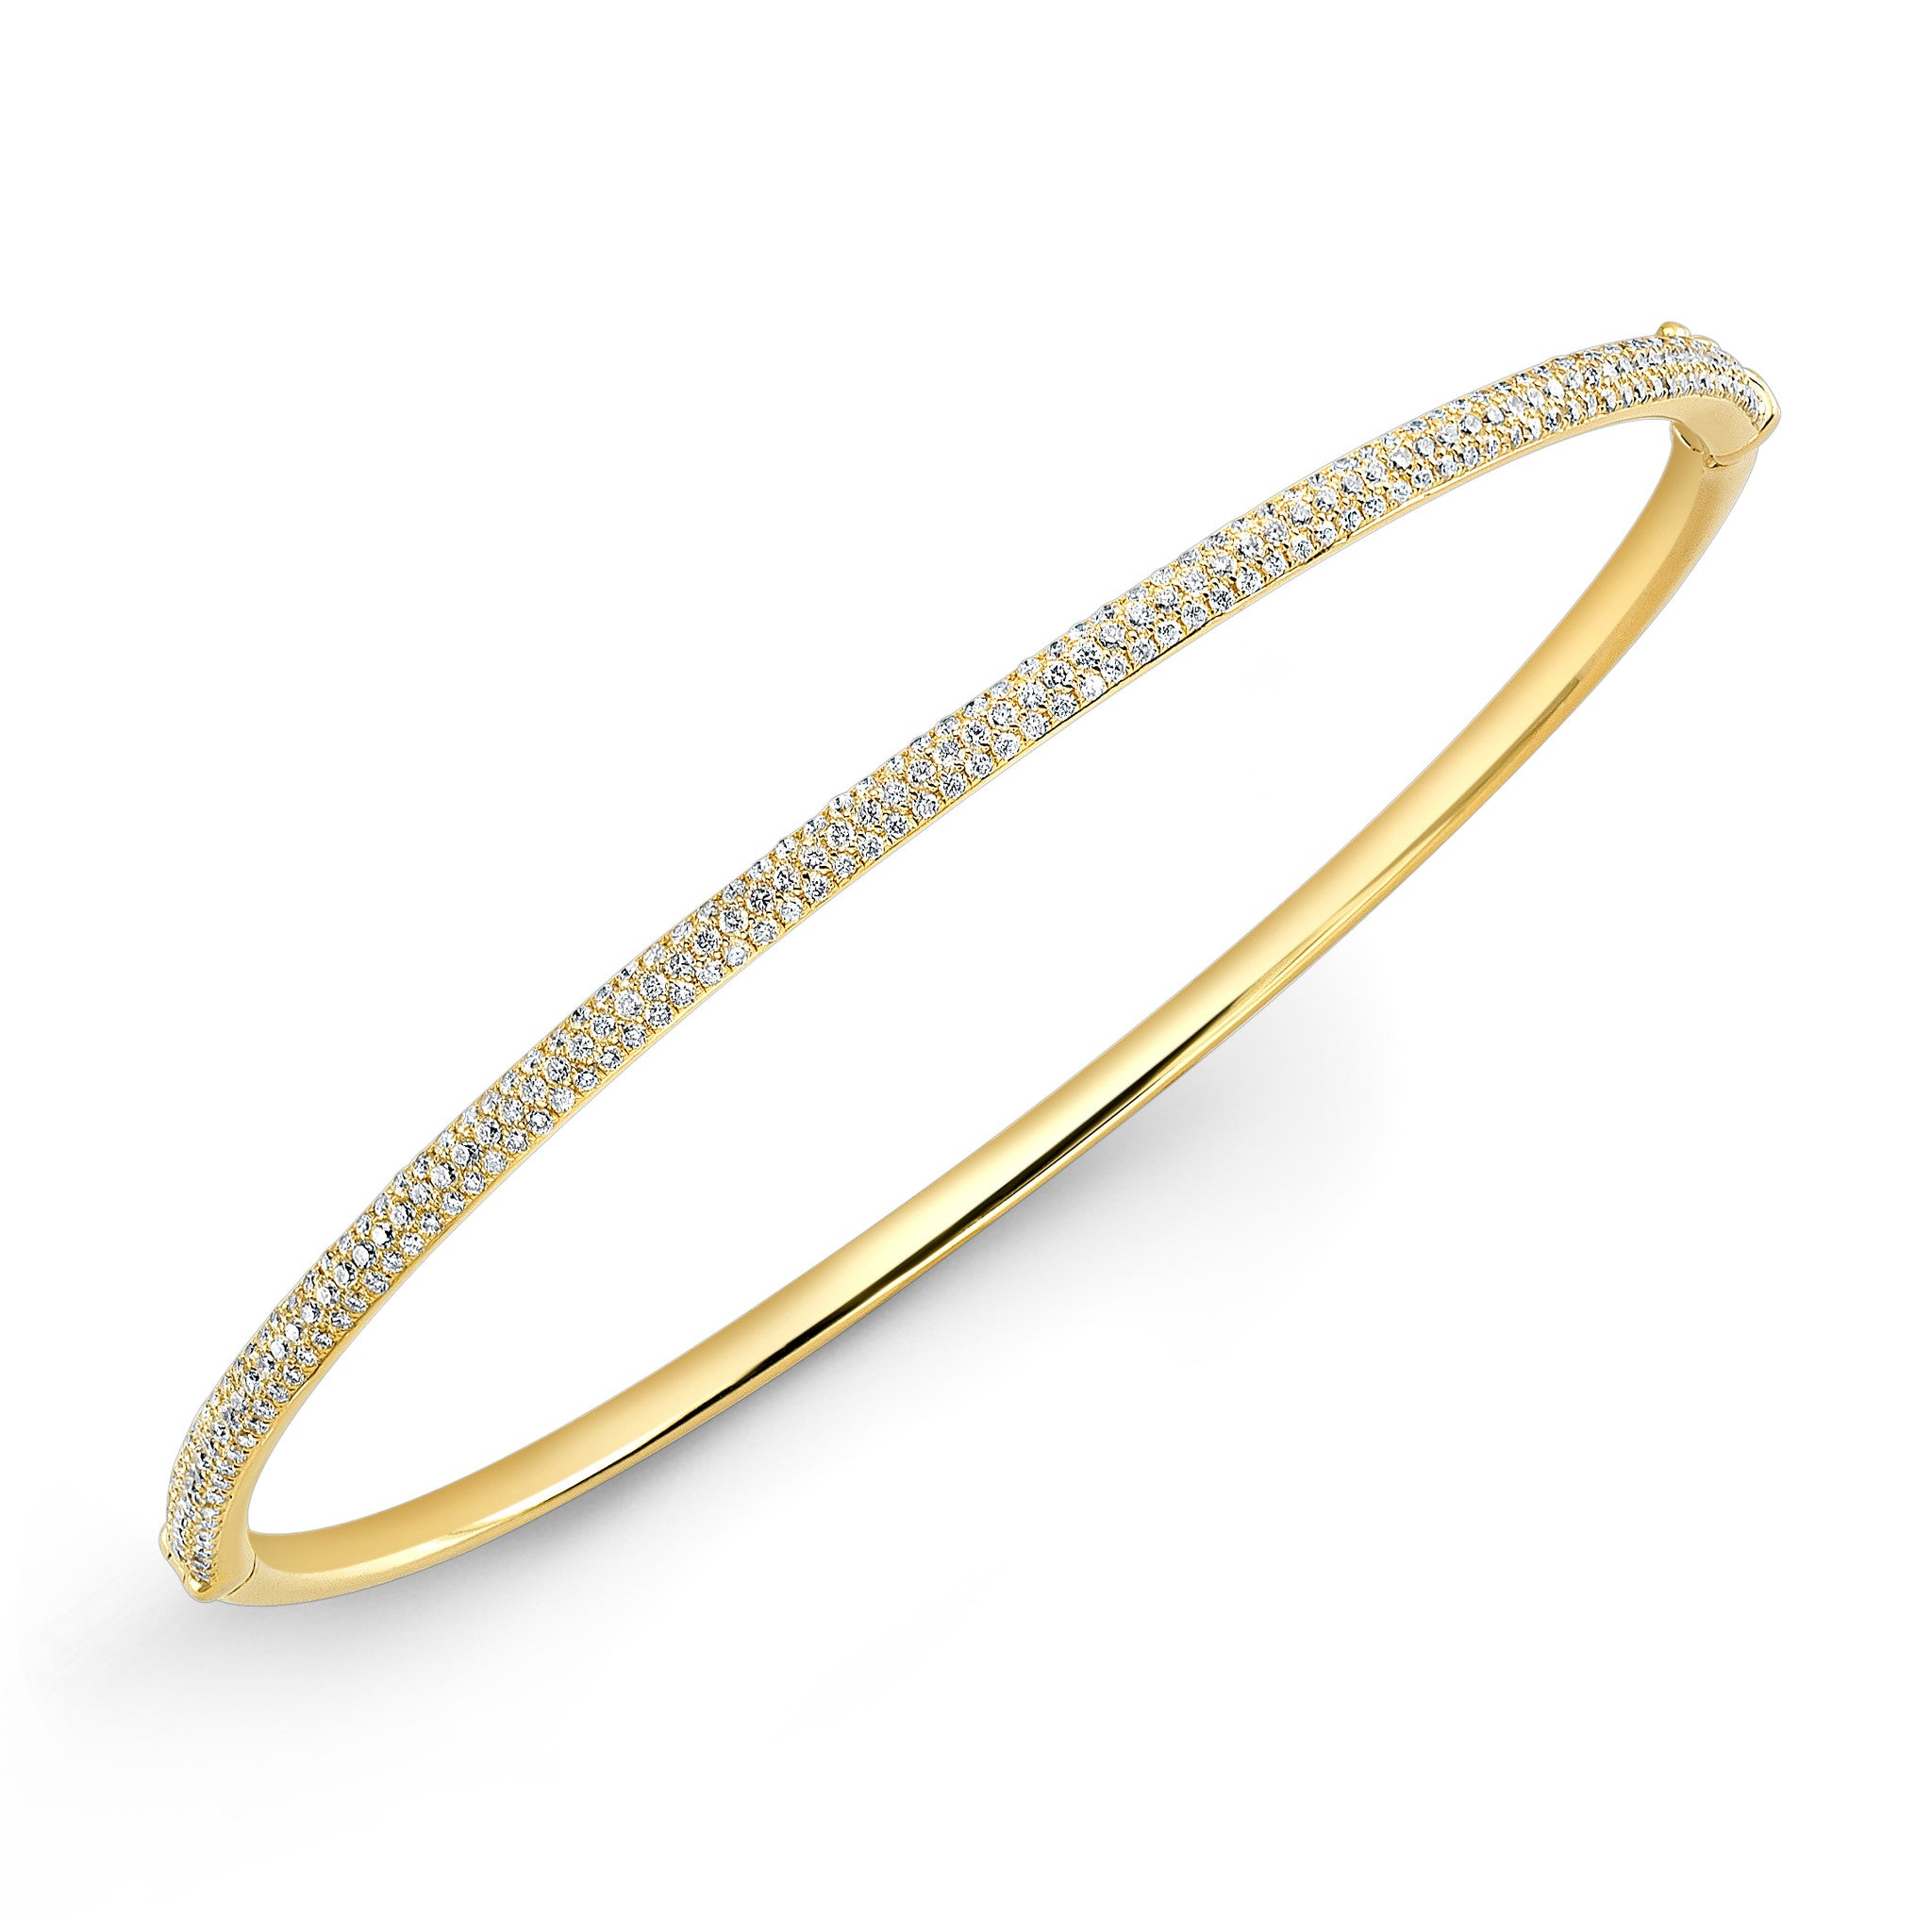 white bangles id pave bracelet gold slip j x on diamond for bracelets and trio of yellow bangle sale rose jewelry